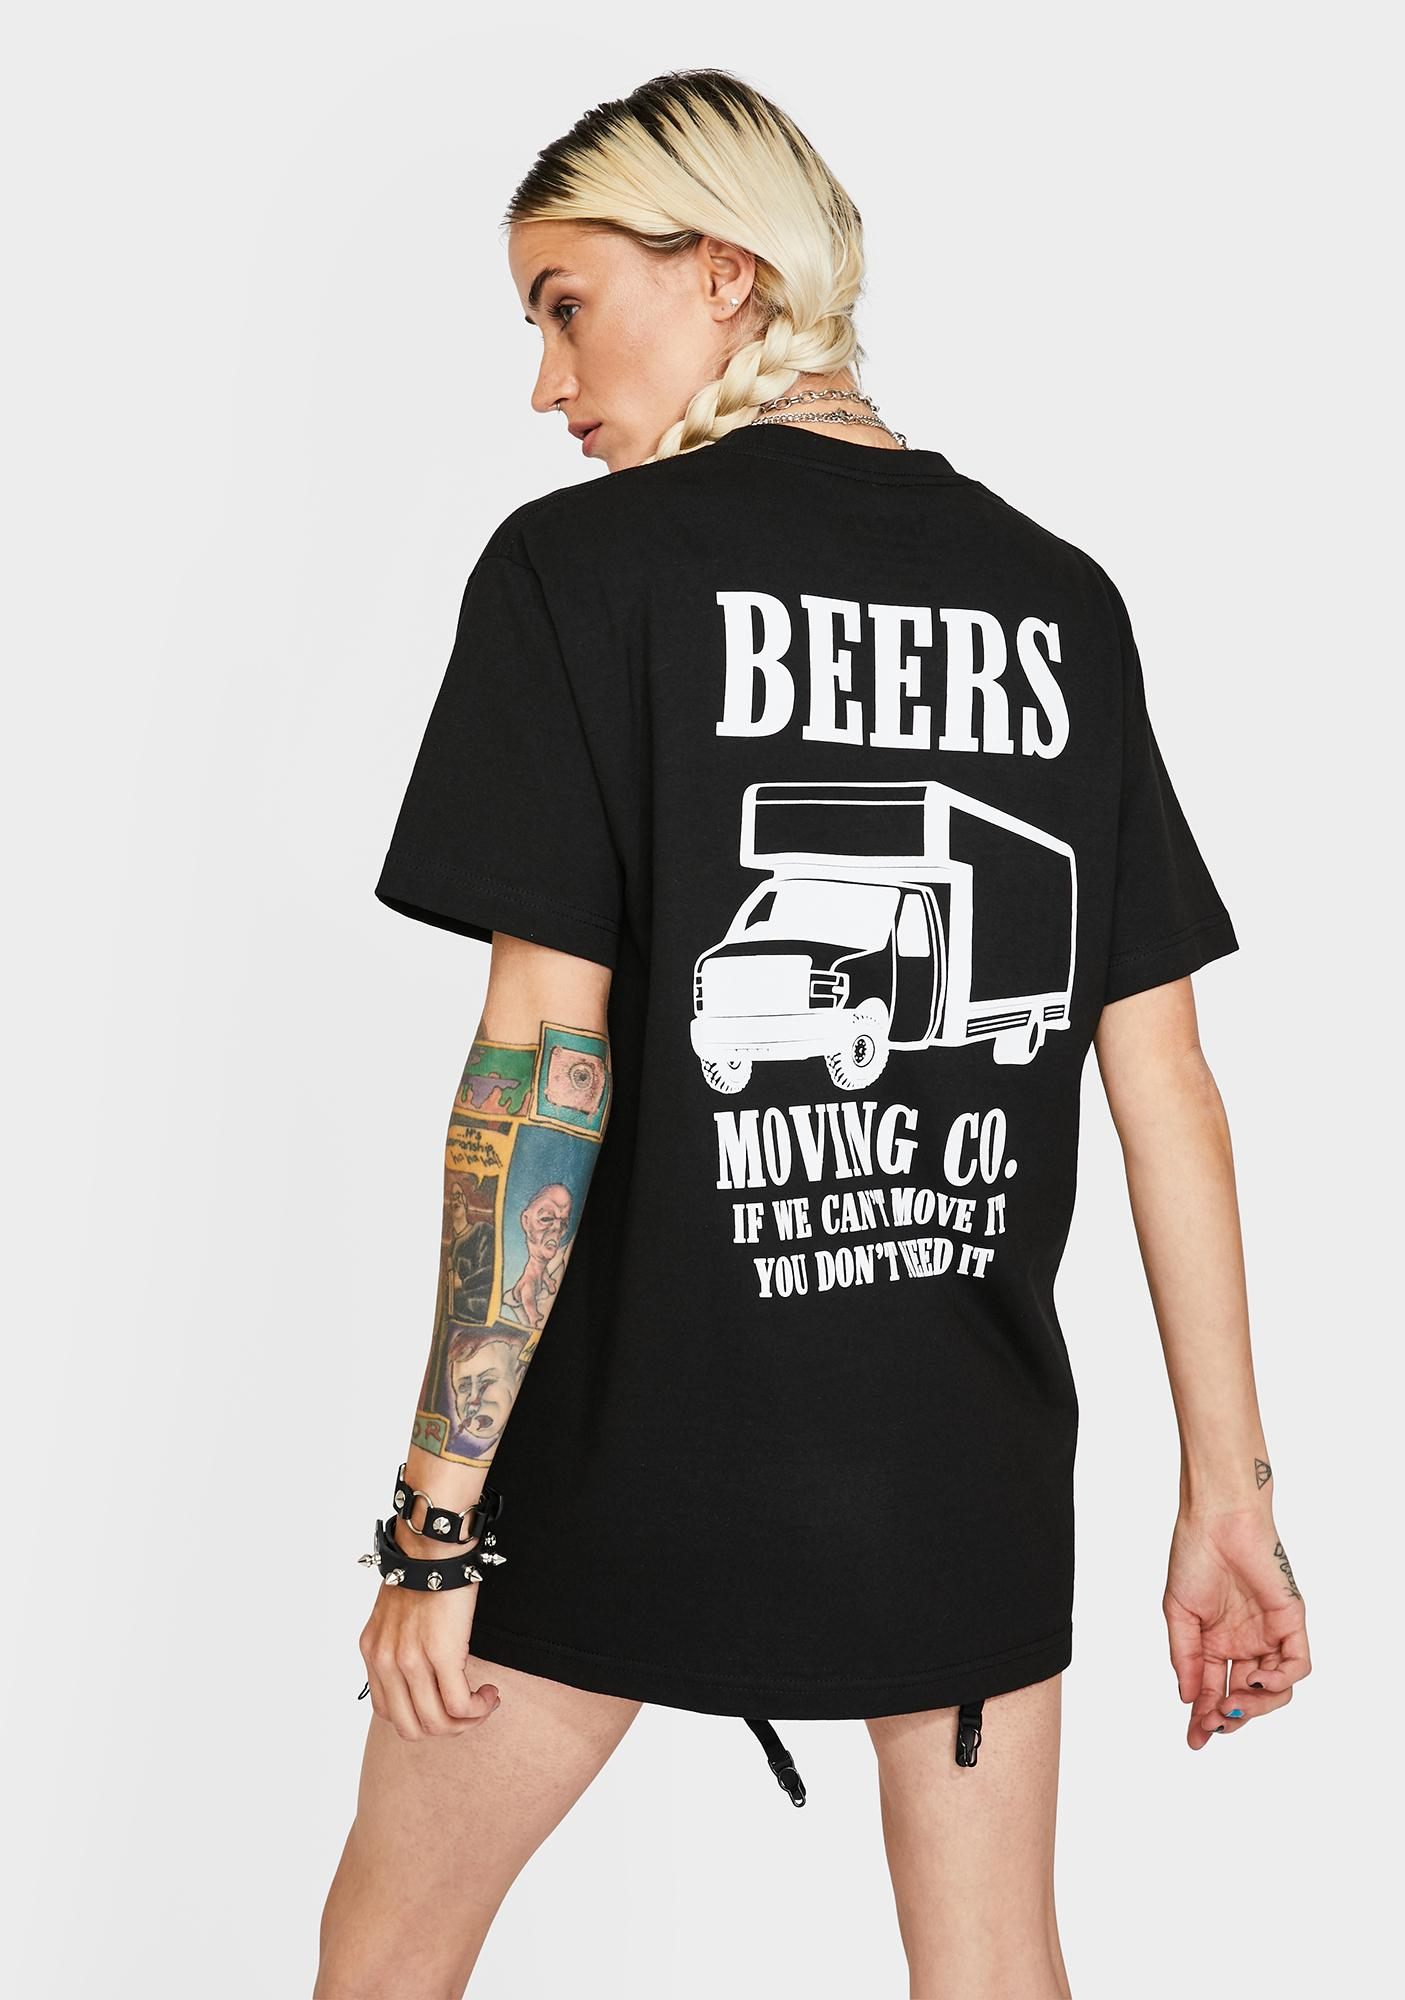 Beers Moving Company Graphic Tee